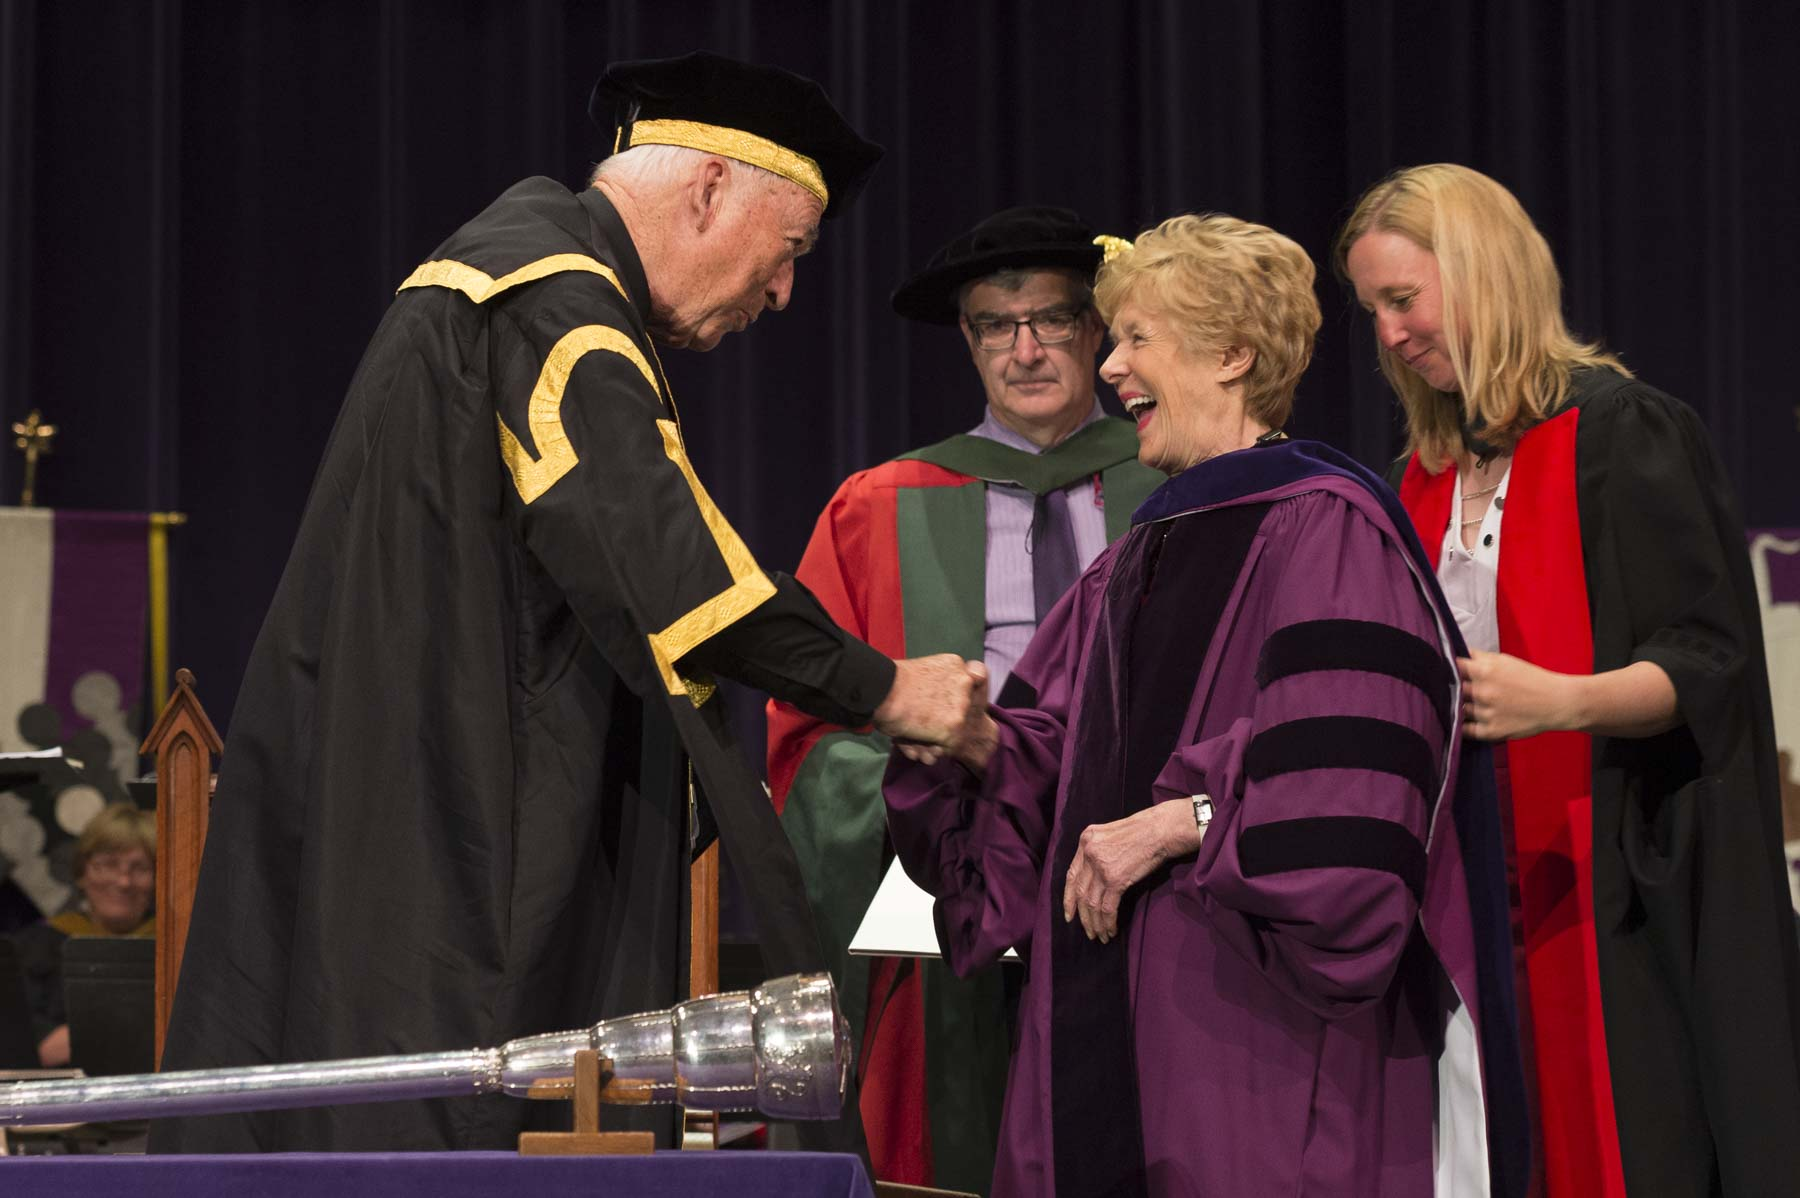 Chancellor Jack Cowin congratulated Her Excellency after she received her honorary degree.